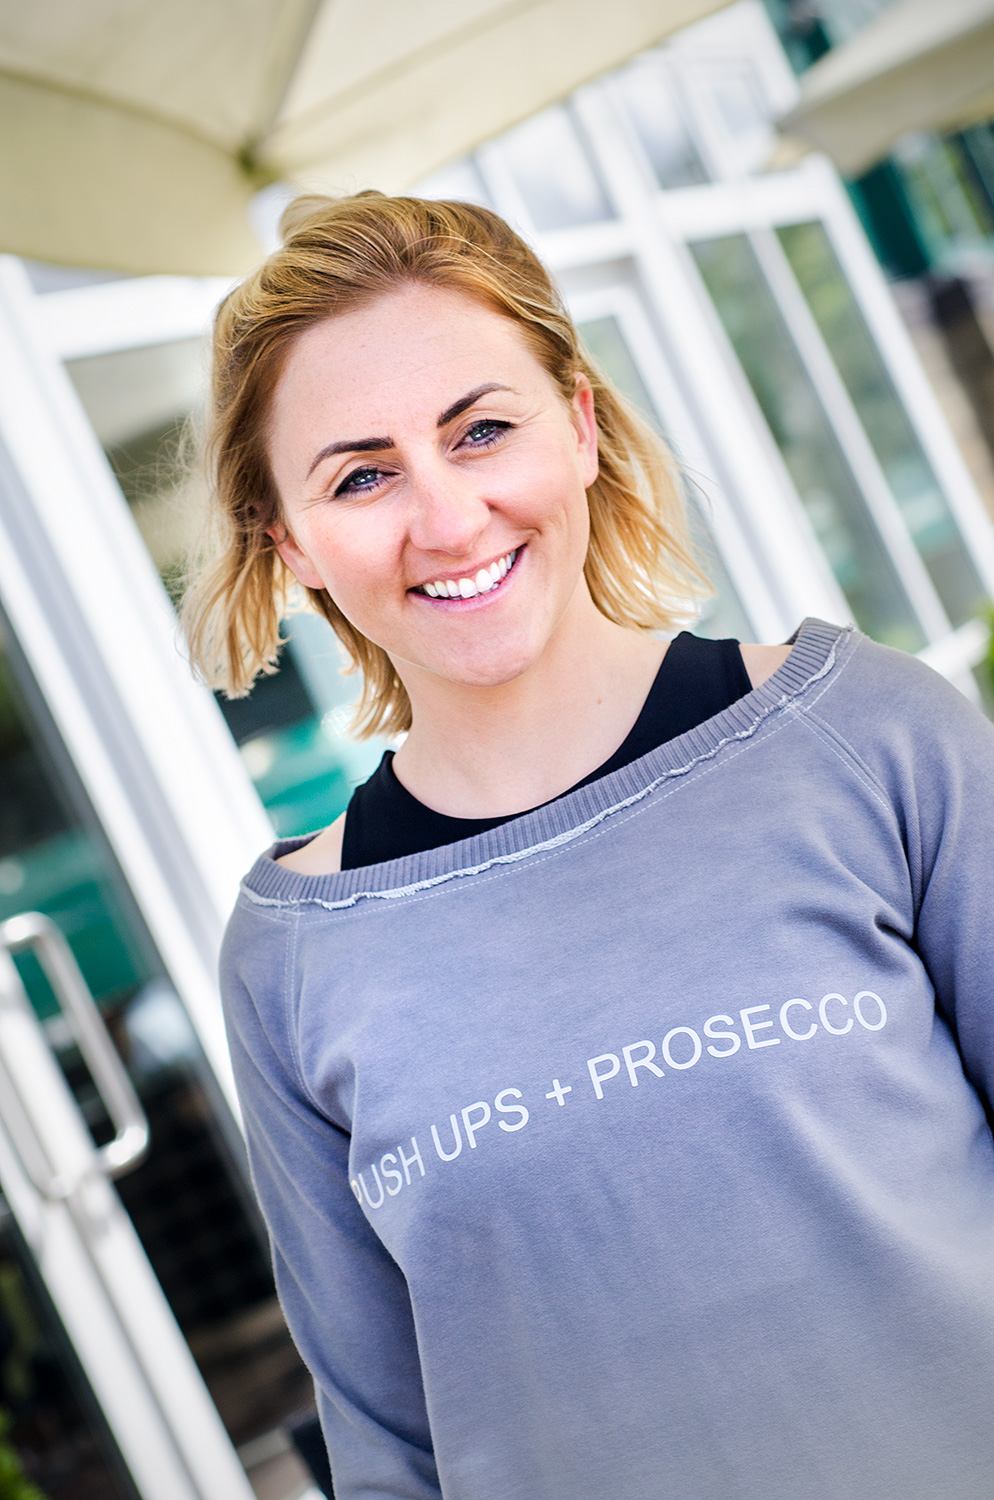 'PUSH UPS + PROSECCO' Sweatshirt: Medium